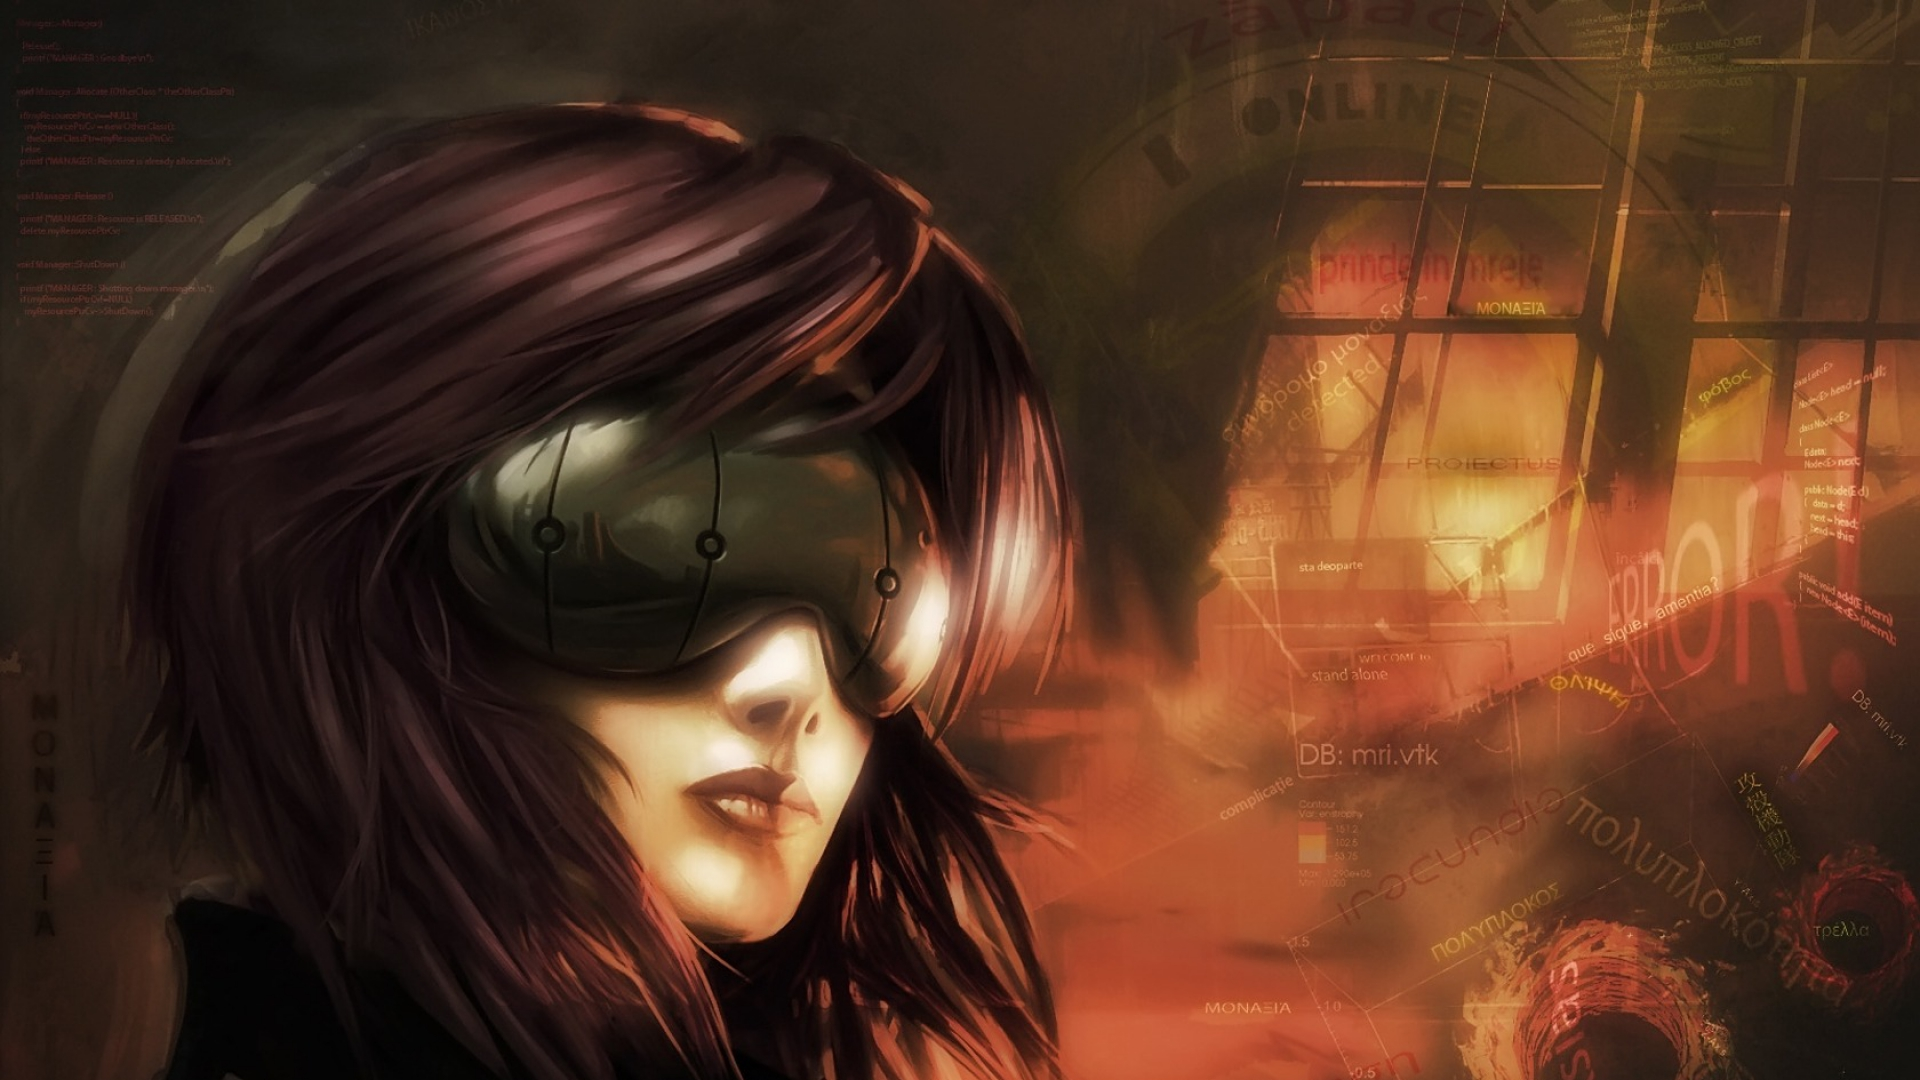 Ghost Girl Horror Wallpaper For Iphone Ghost In The Shell Full Hd Wallpaper And Background Image